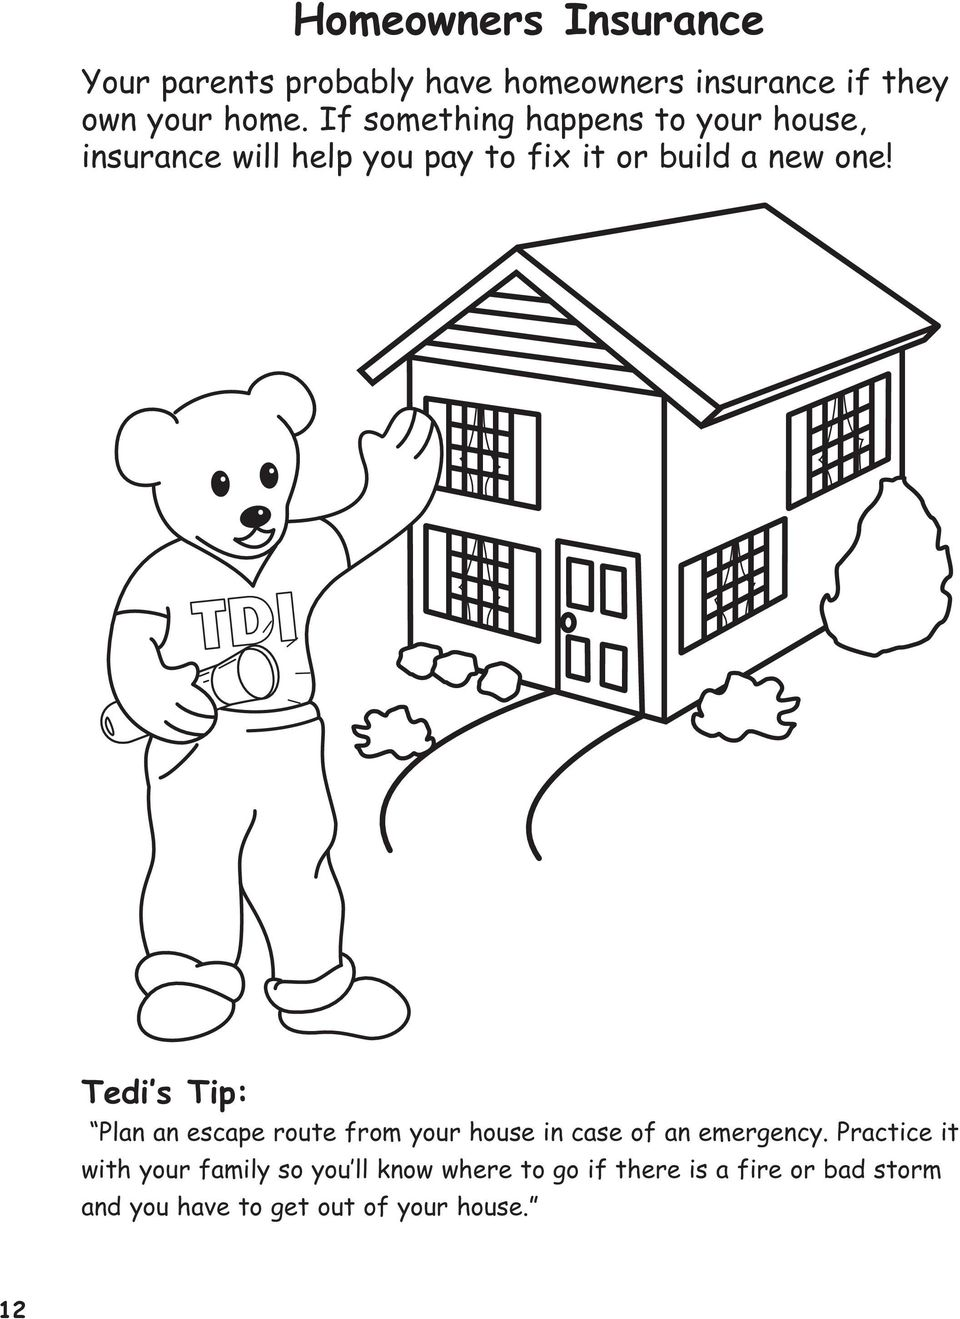 Tedi s Tip: Plan an escape route from your house in case of an emergency.